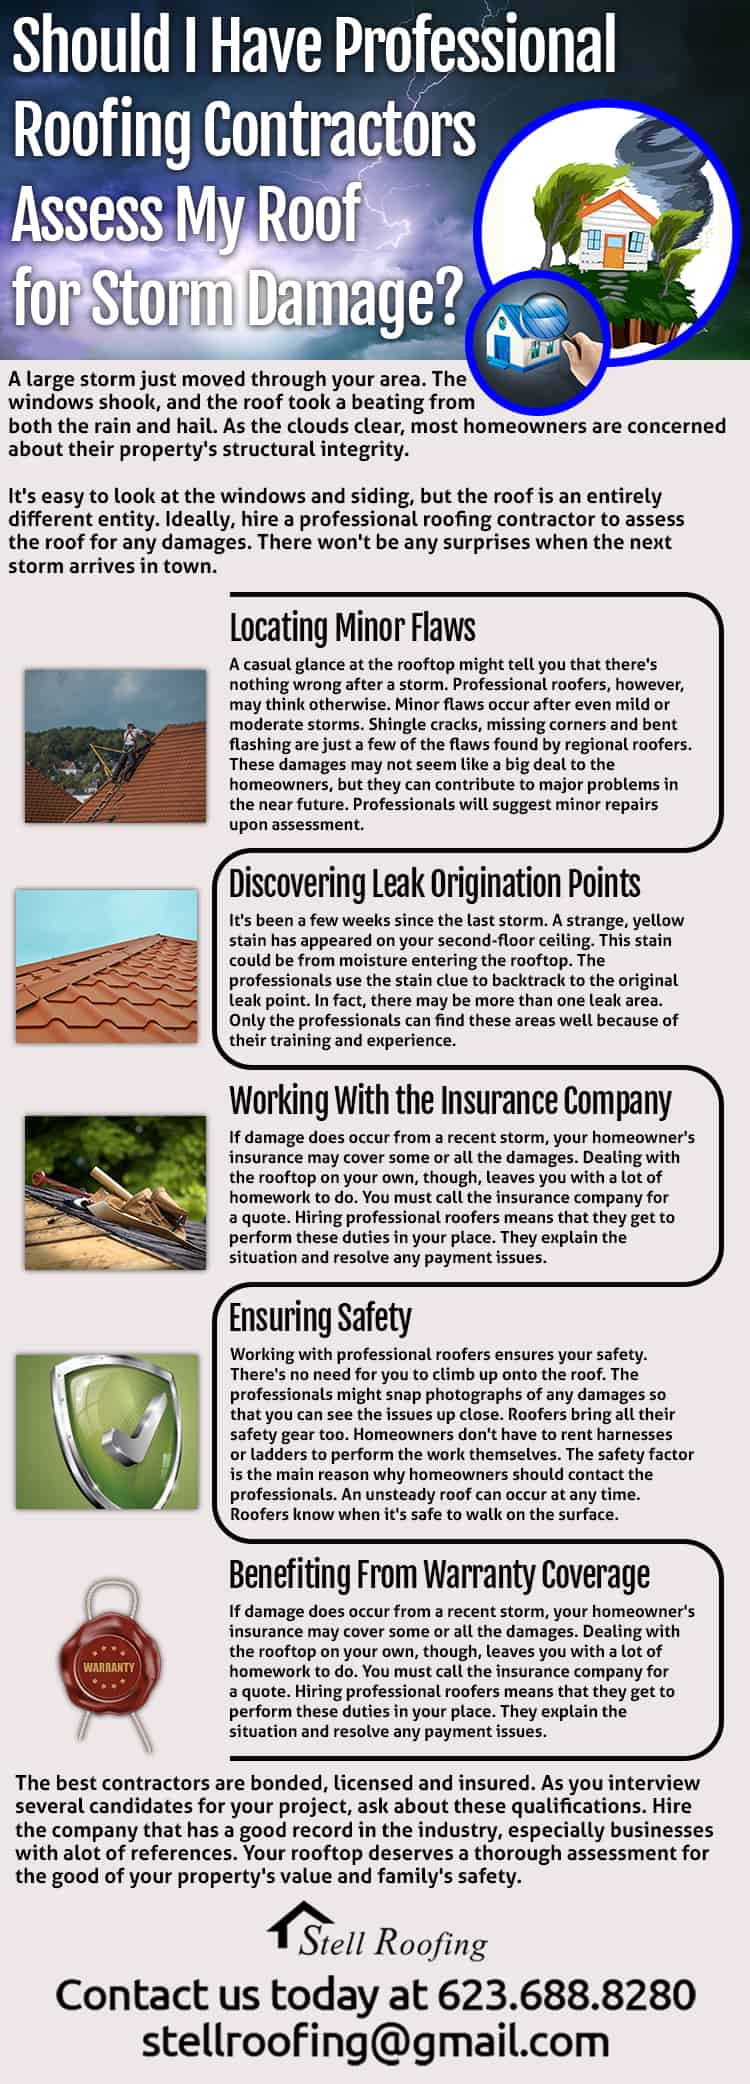 Should I Have Professional Roofing Contractors Assess My Roof for Storm Damage?